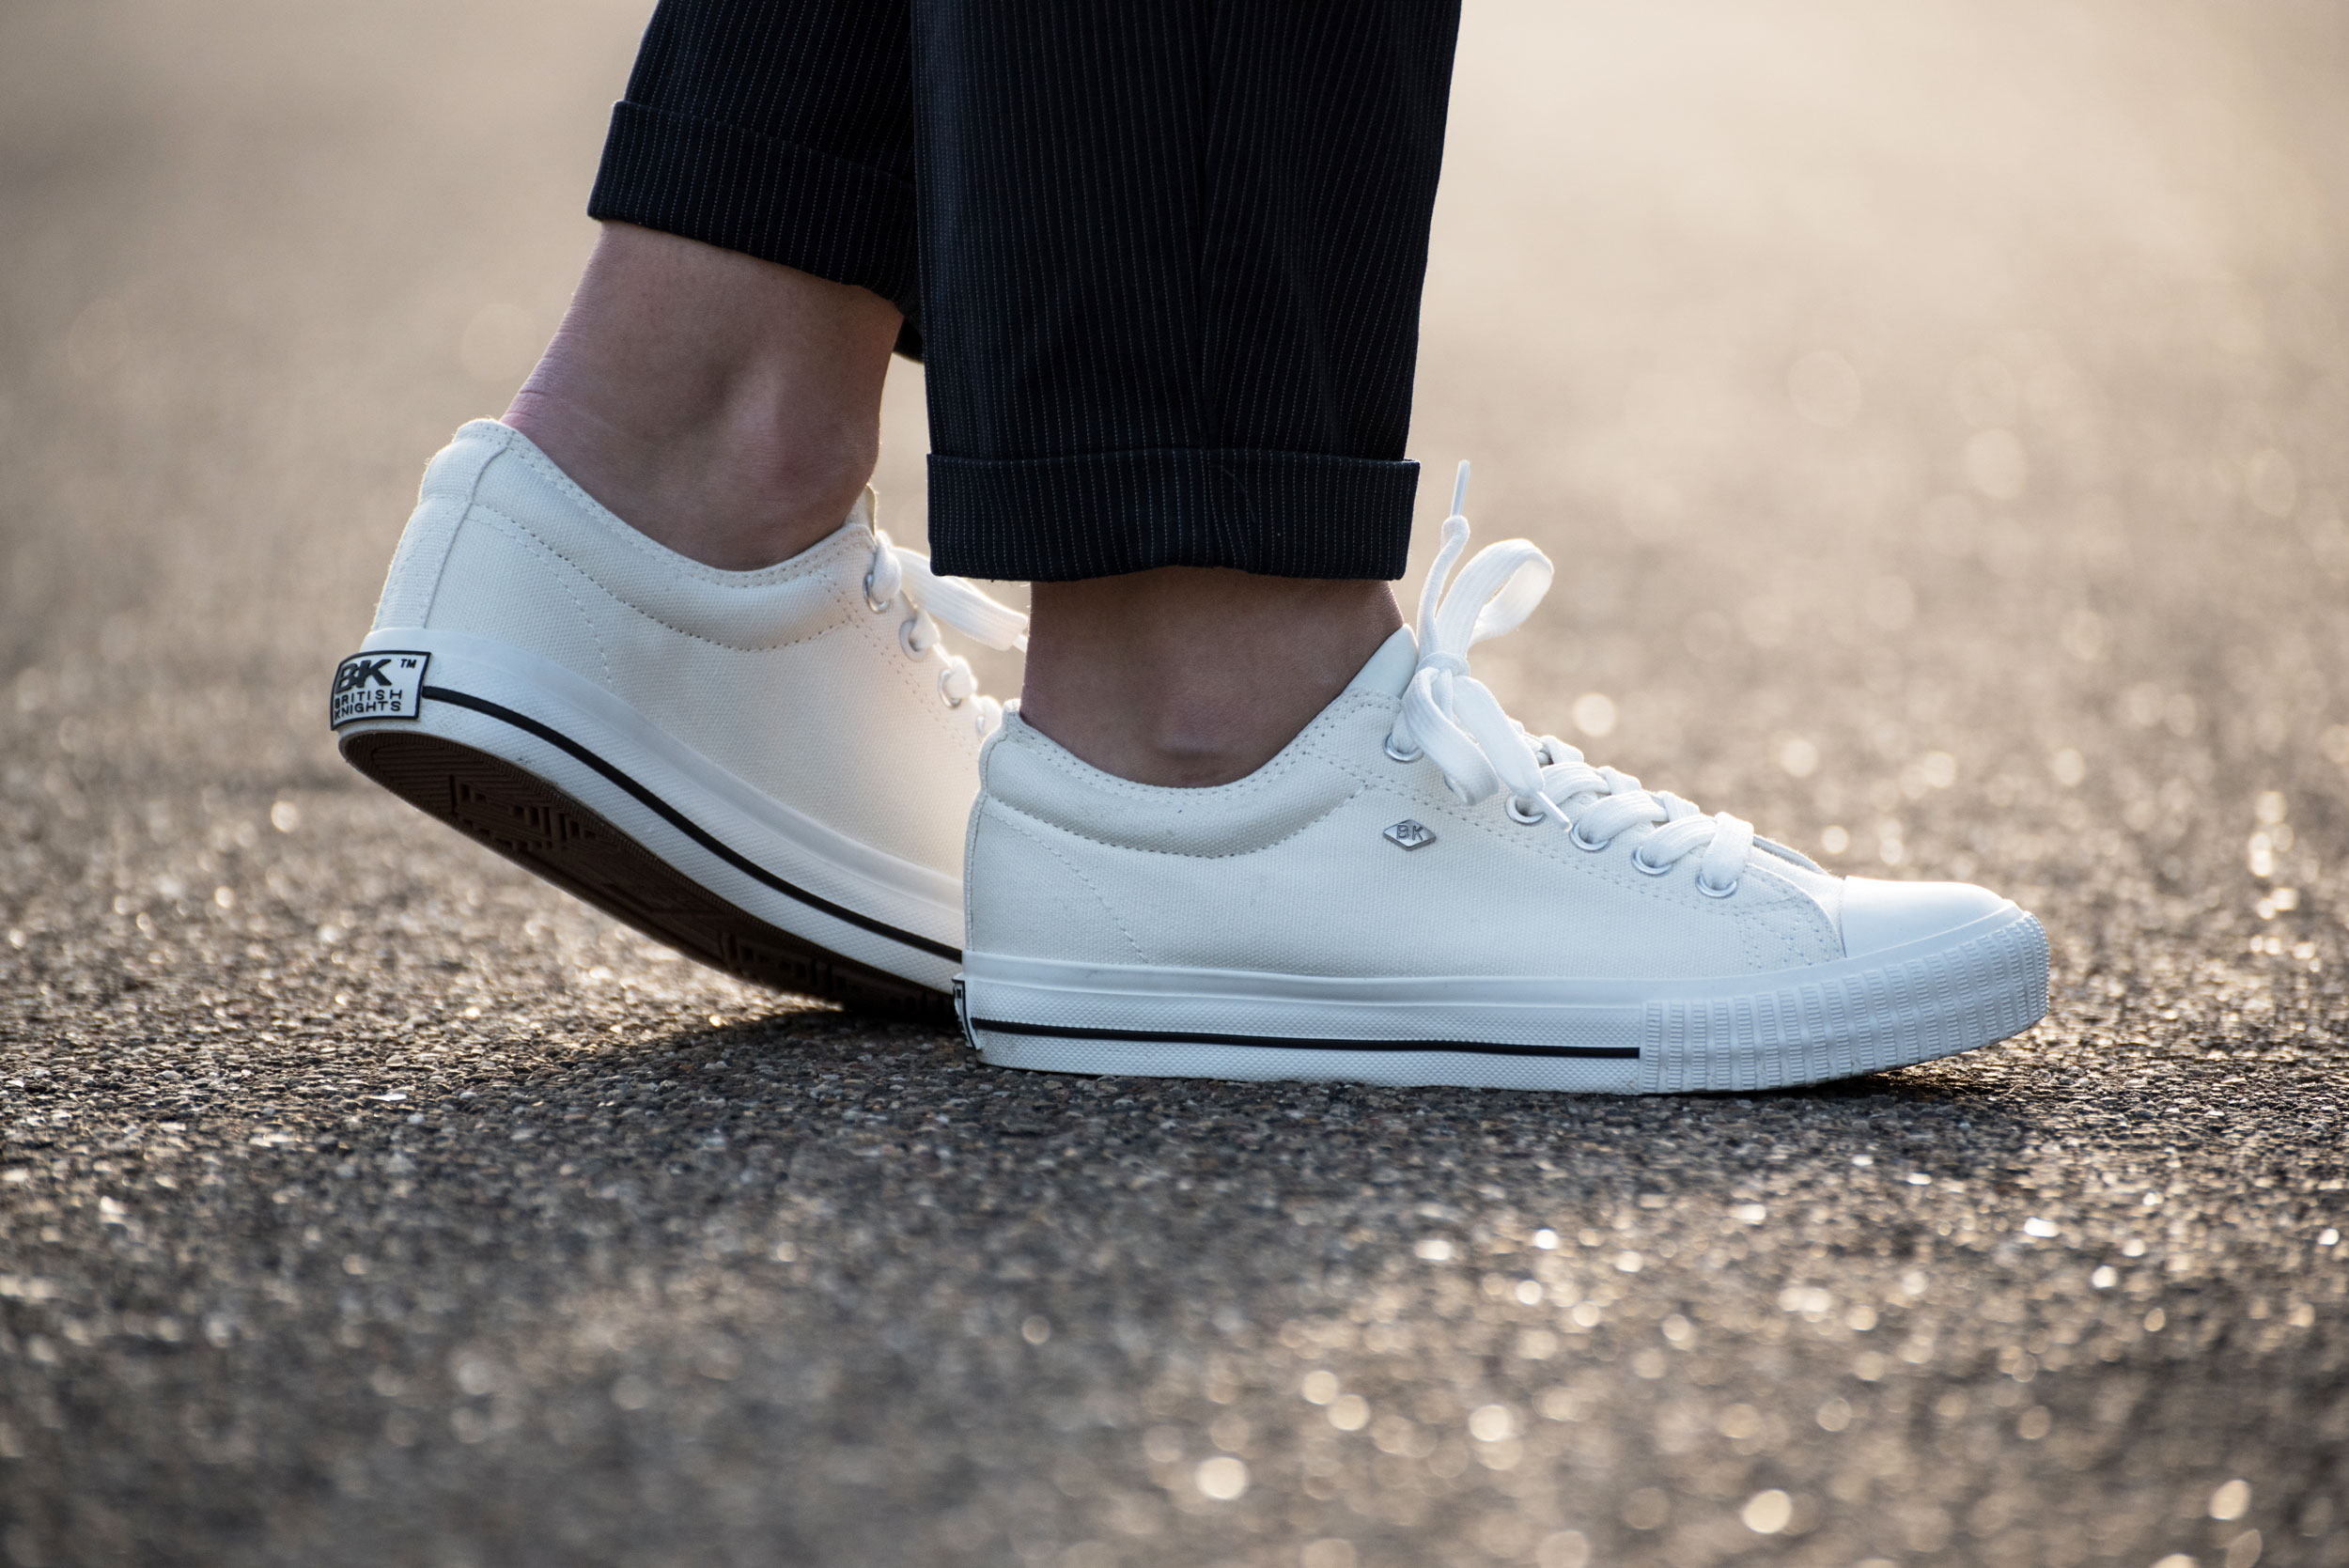 White sneakers - British Knights MASTER LO